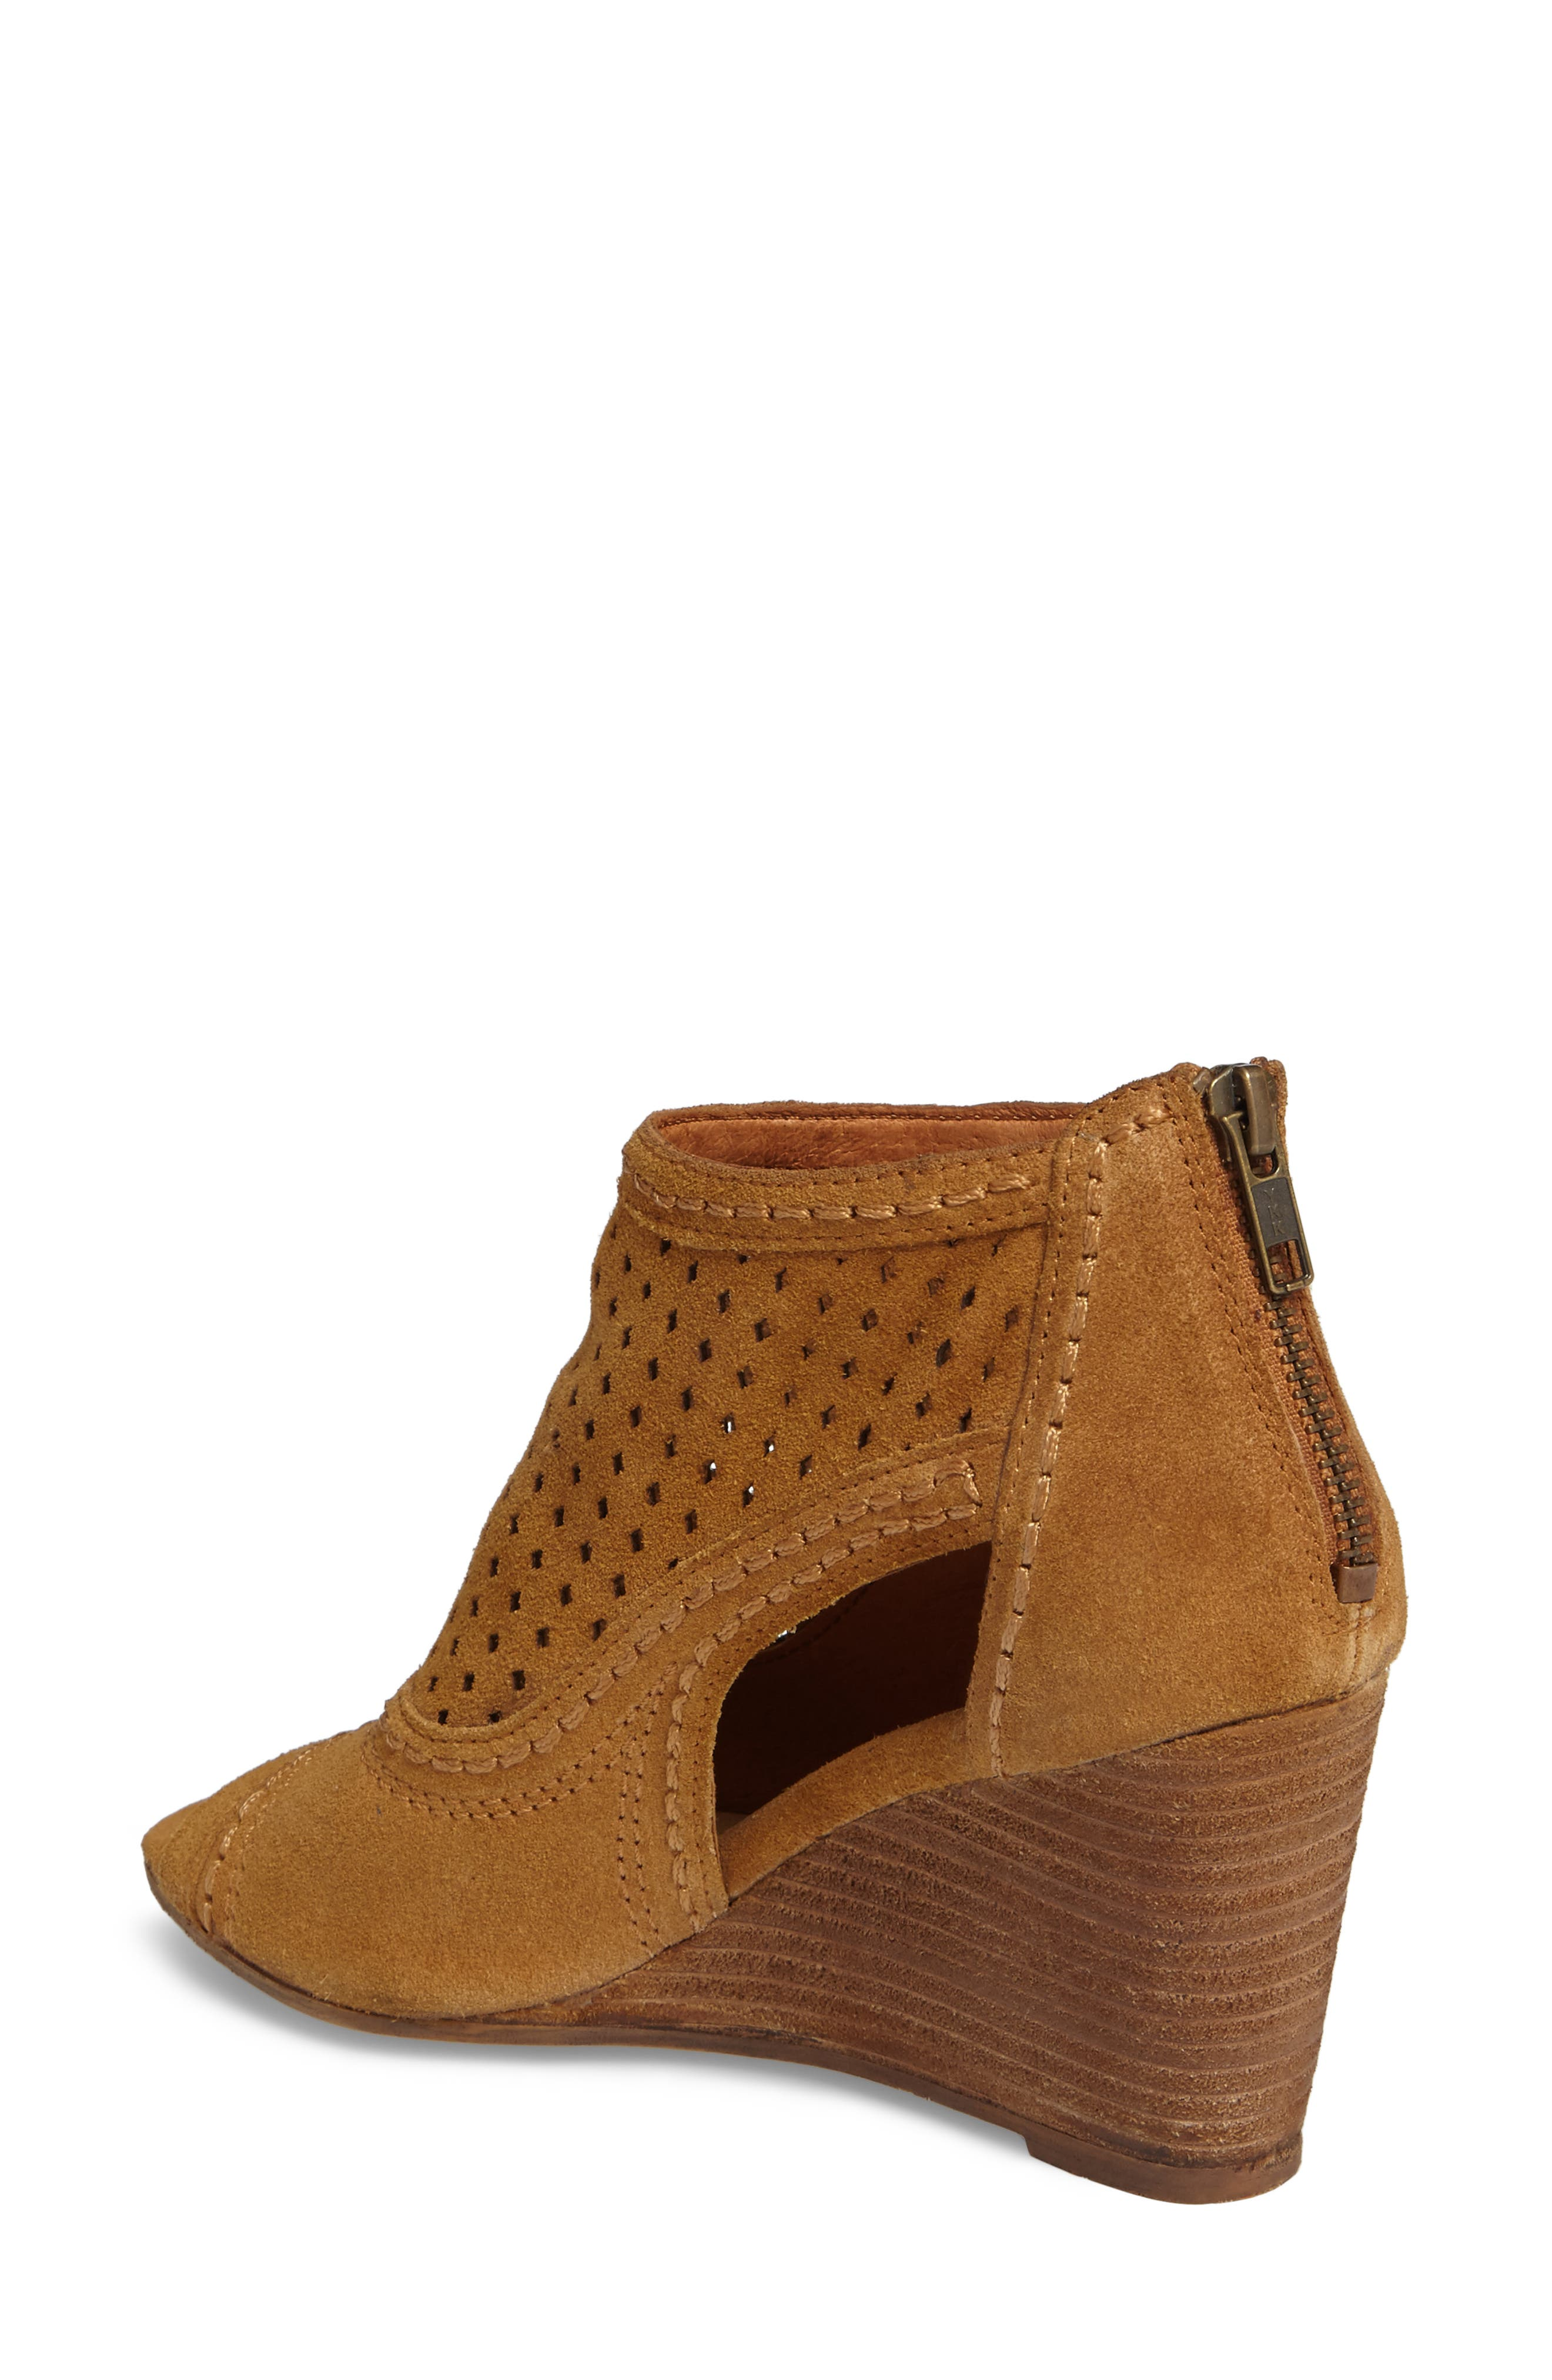 Sharon Perforated Wedge Sandal,                             Alternate thumbnail 2, color,                             Sandcastle Suede